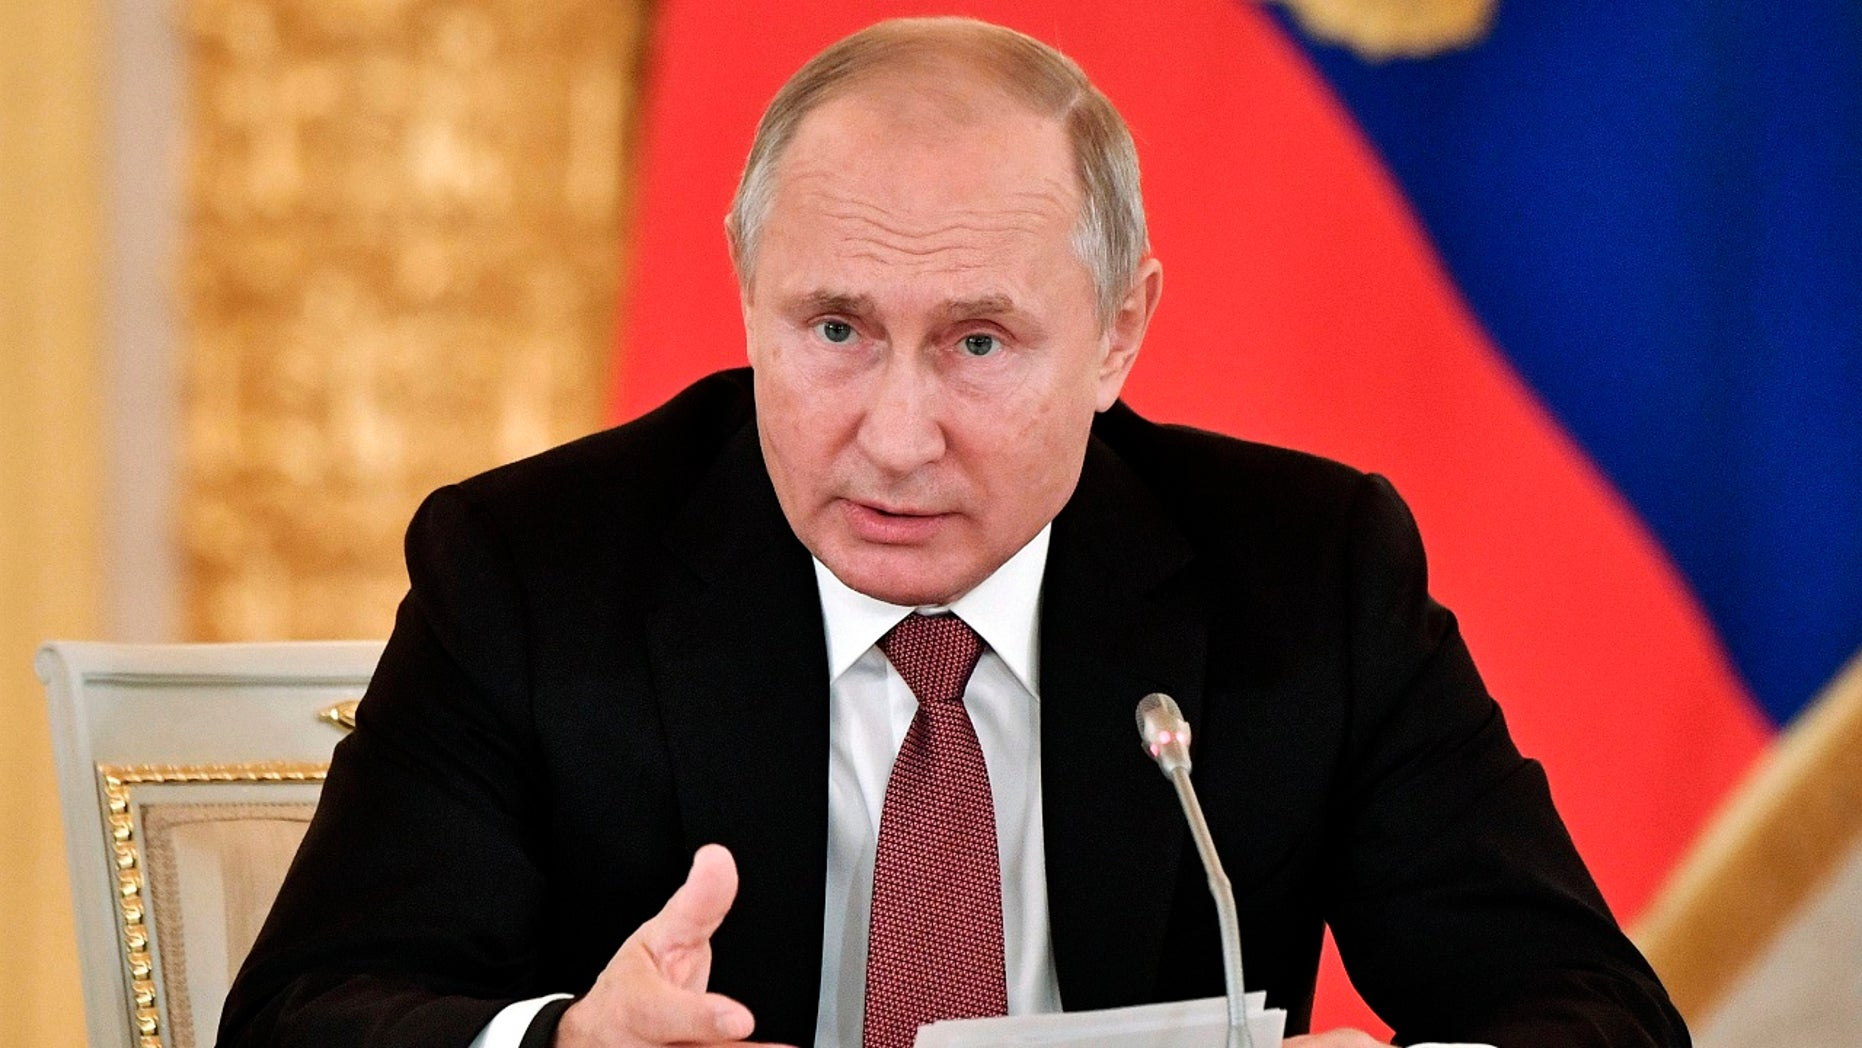 File photo - Russian President Vladimir Putin speaks during a meeting in Moscow's Kremlin, Russia, Tuesday, Nov. 27, 2018.